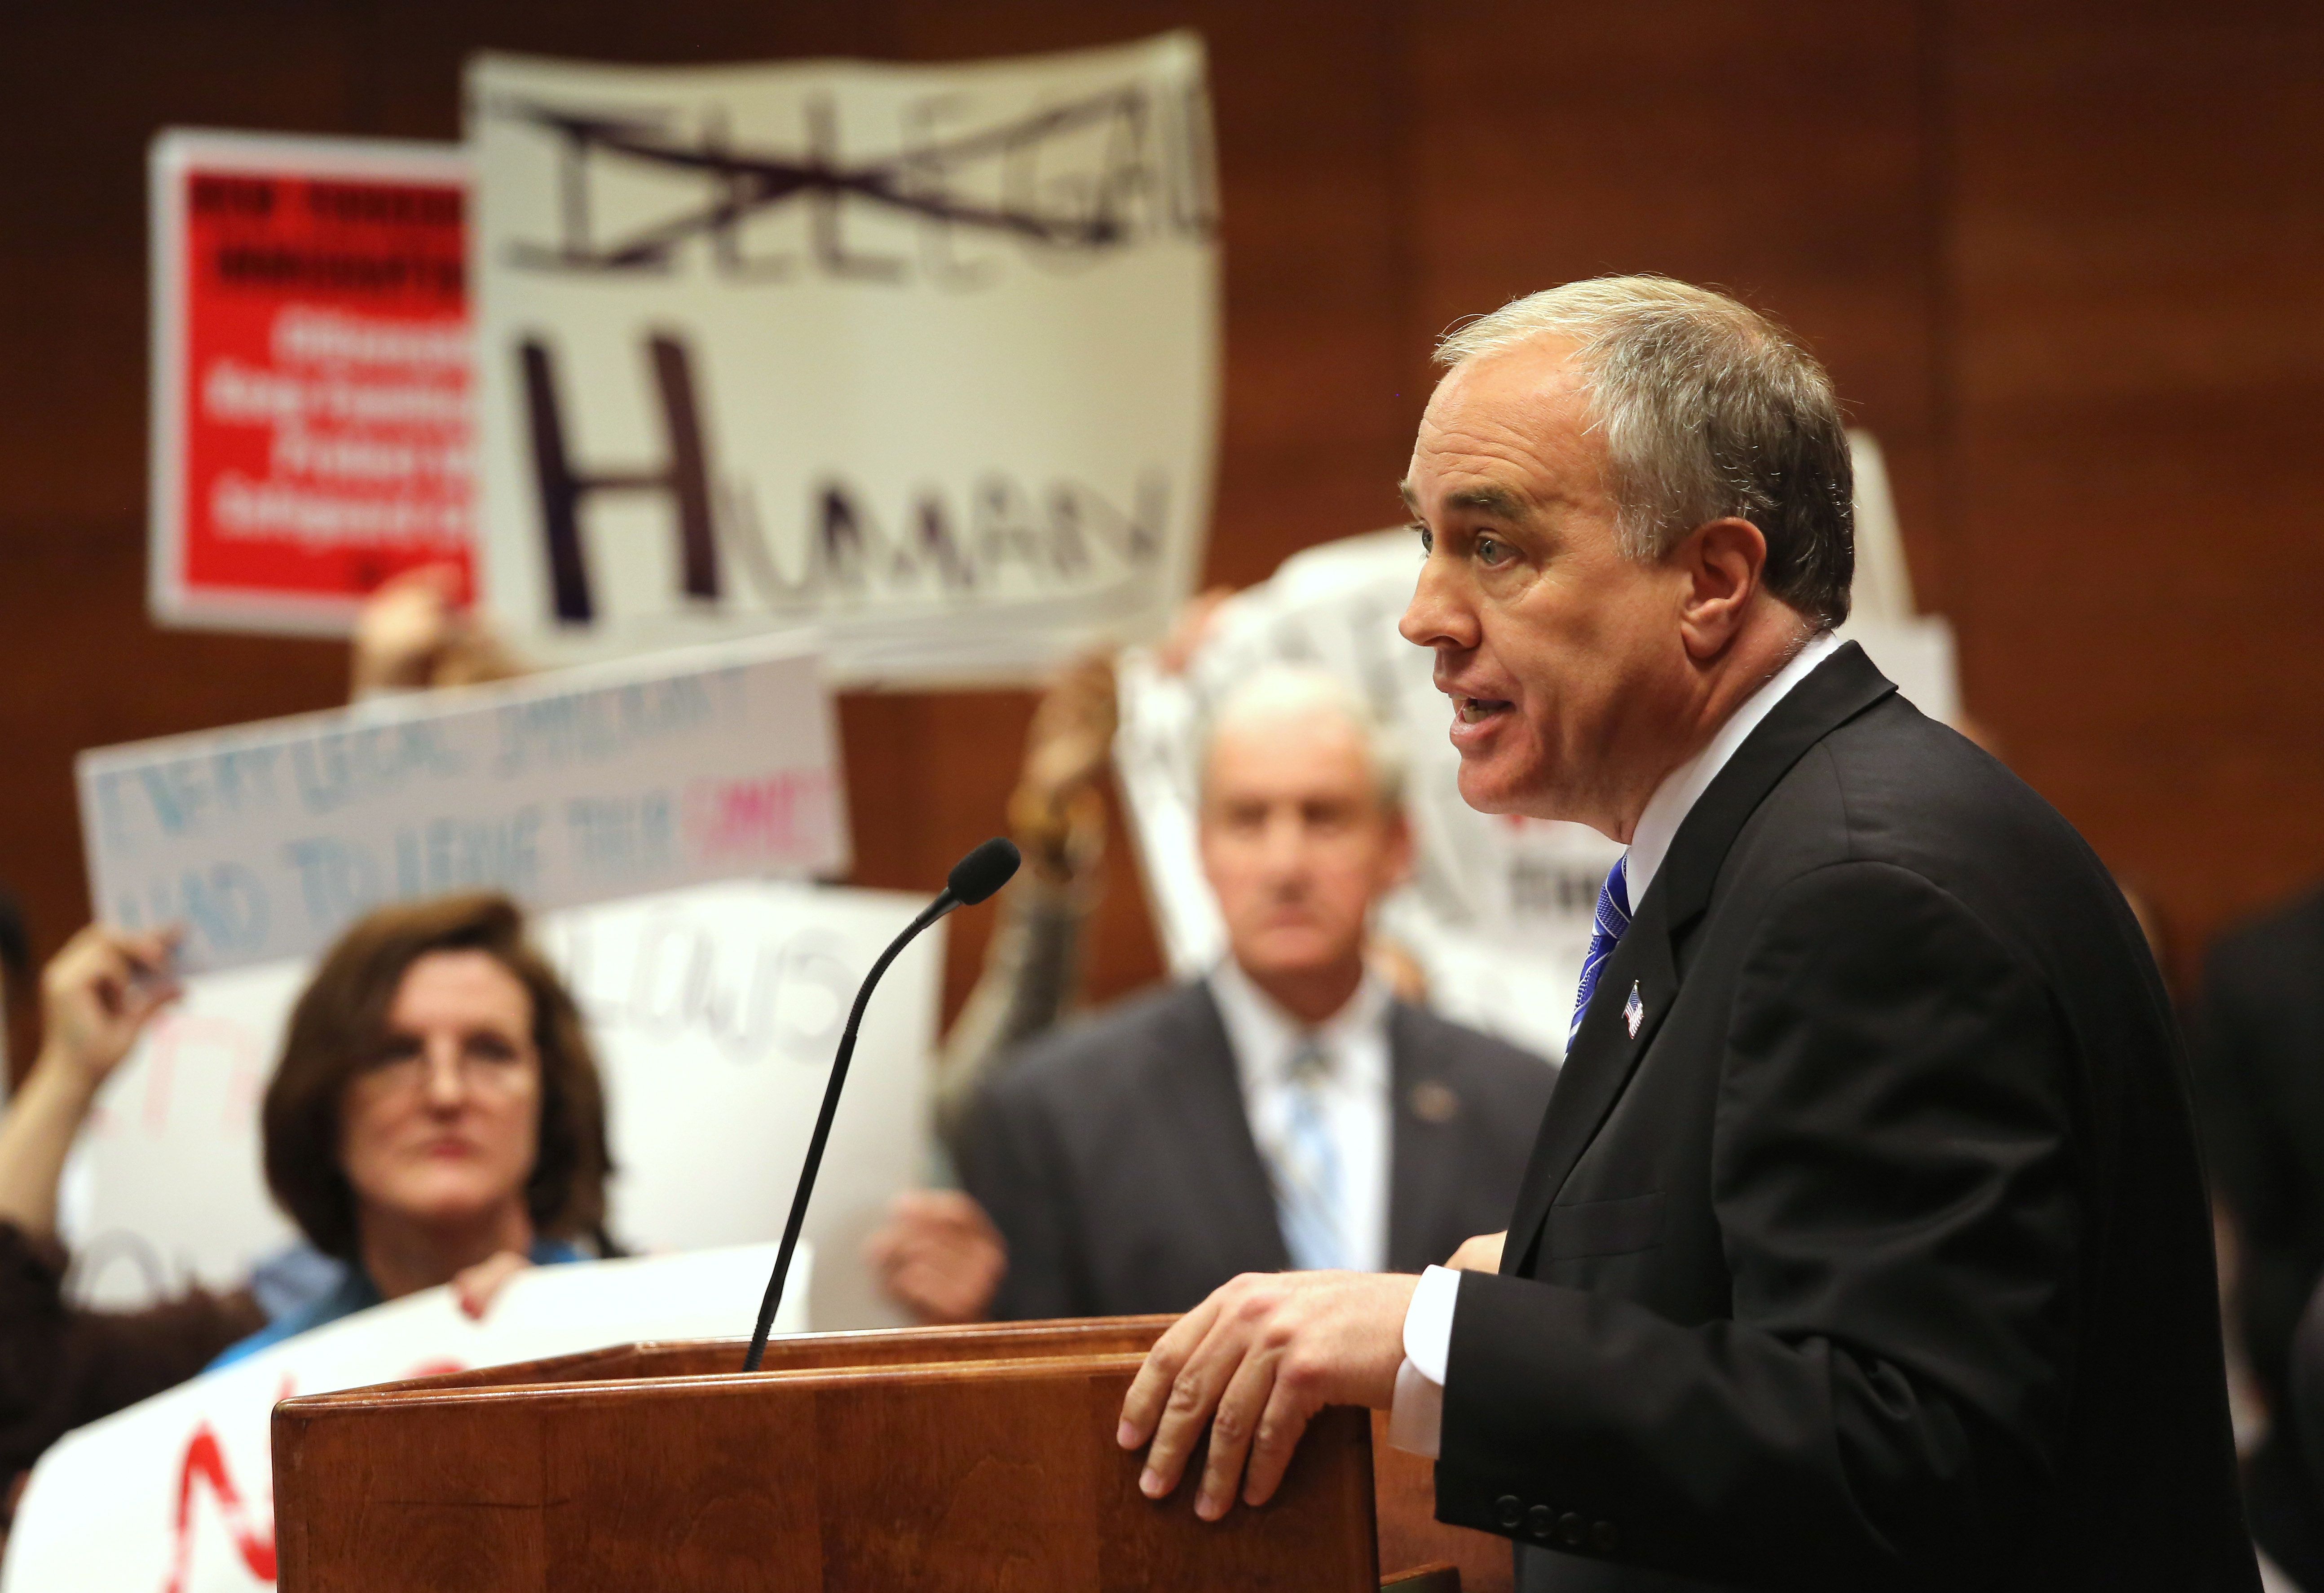 State Comptroller Thomas DiNapoli. (Photo: John Moore/Getty Images)